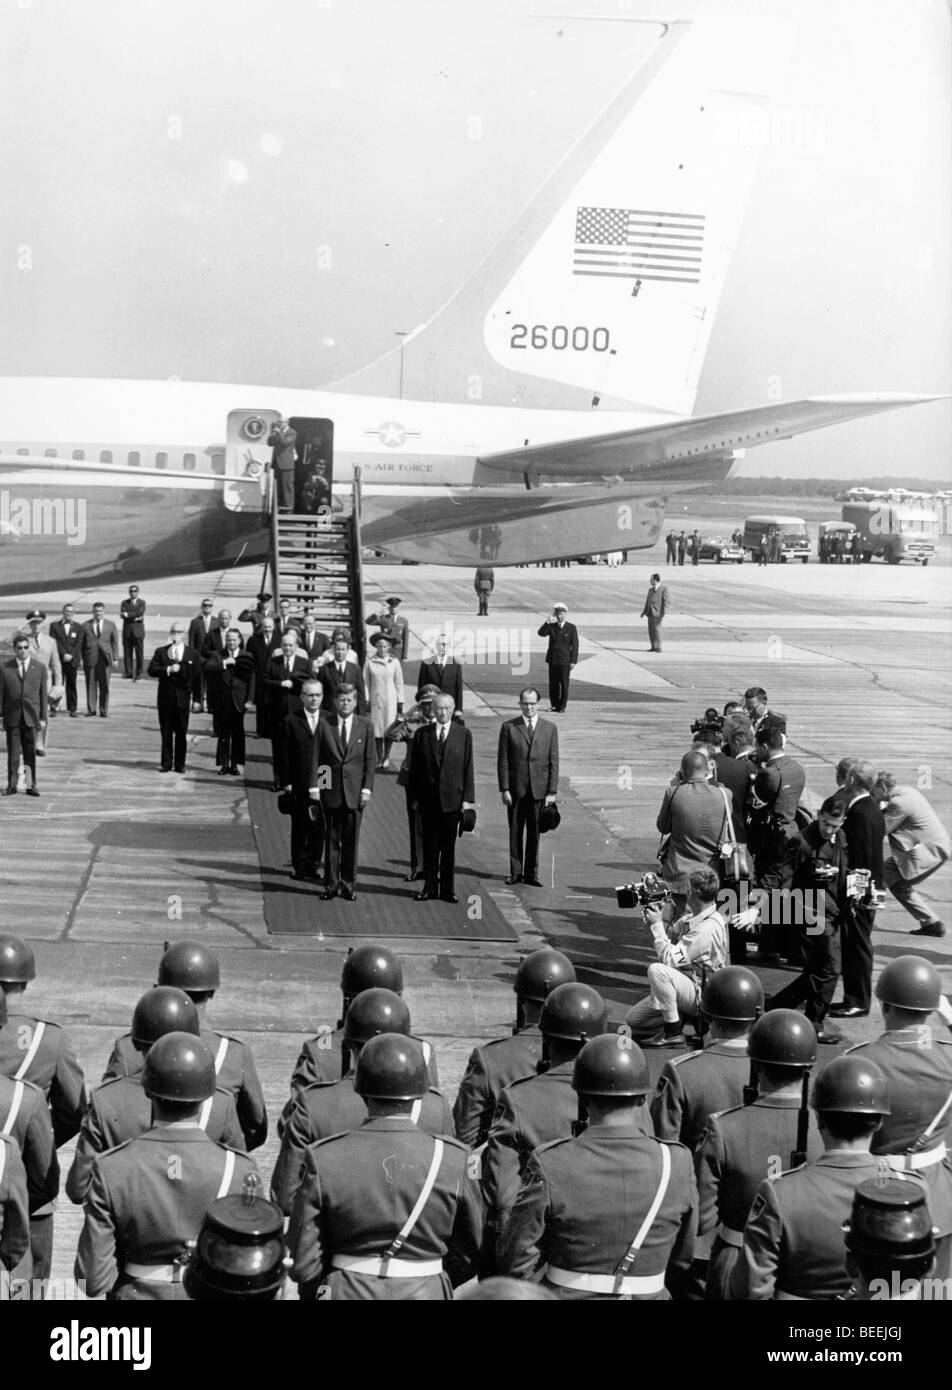 US President John Fitzgerald Kennedy arrives for an official visit to West Germany. Stock Photo